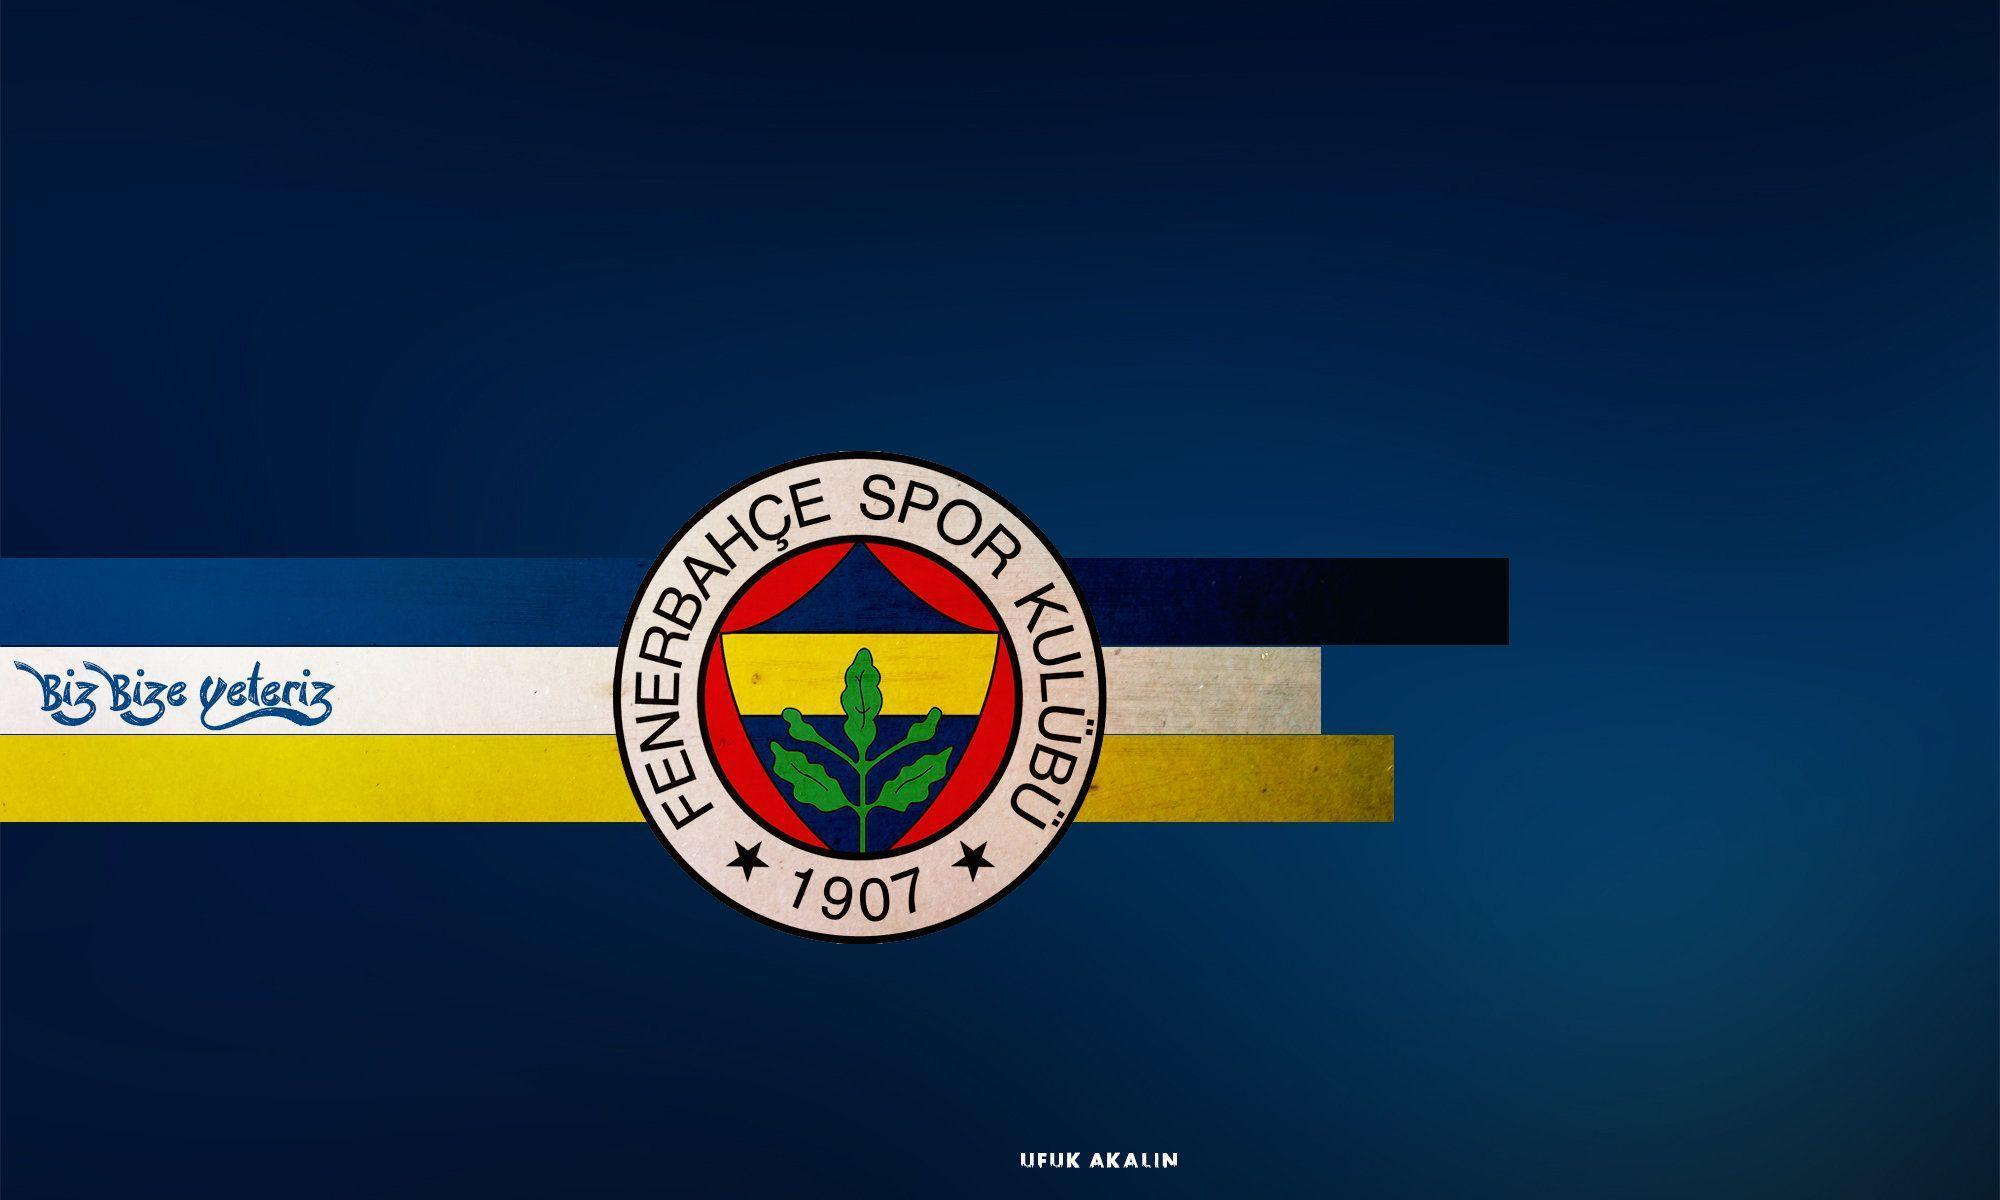 FENERBAHCE - Wallpaper by ufuuk7 on DeviantArt